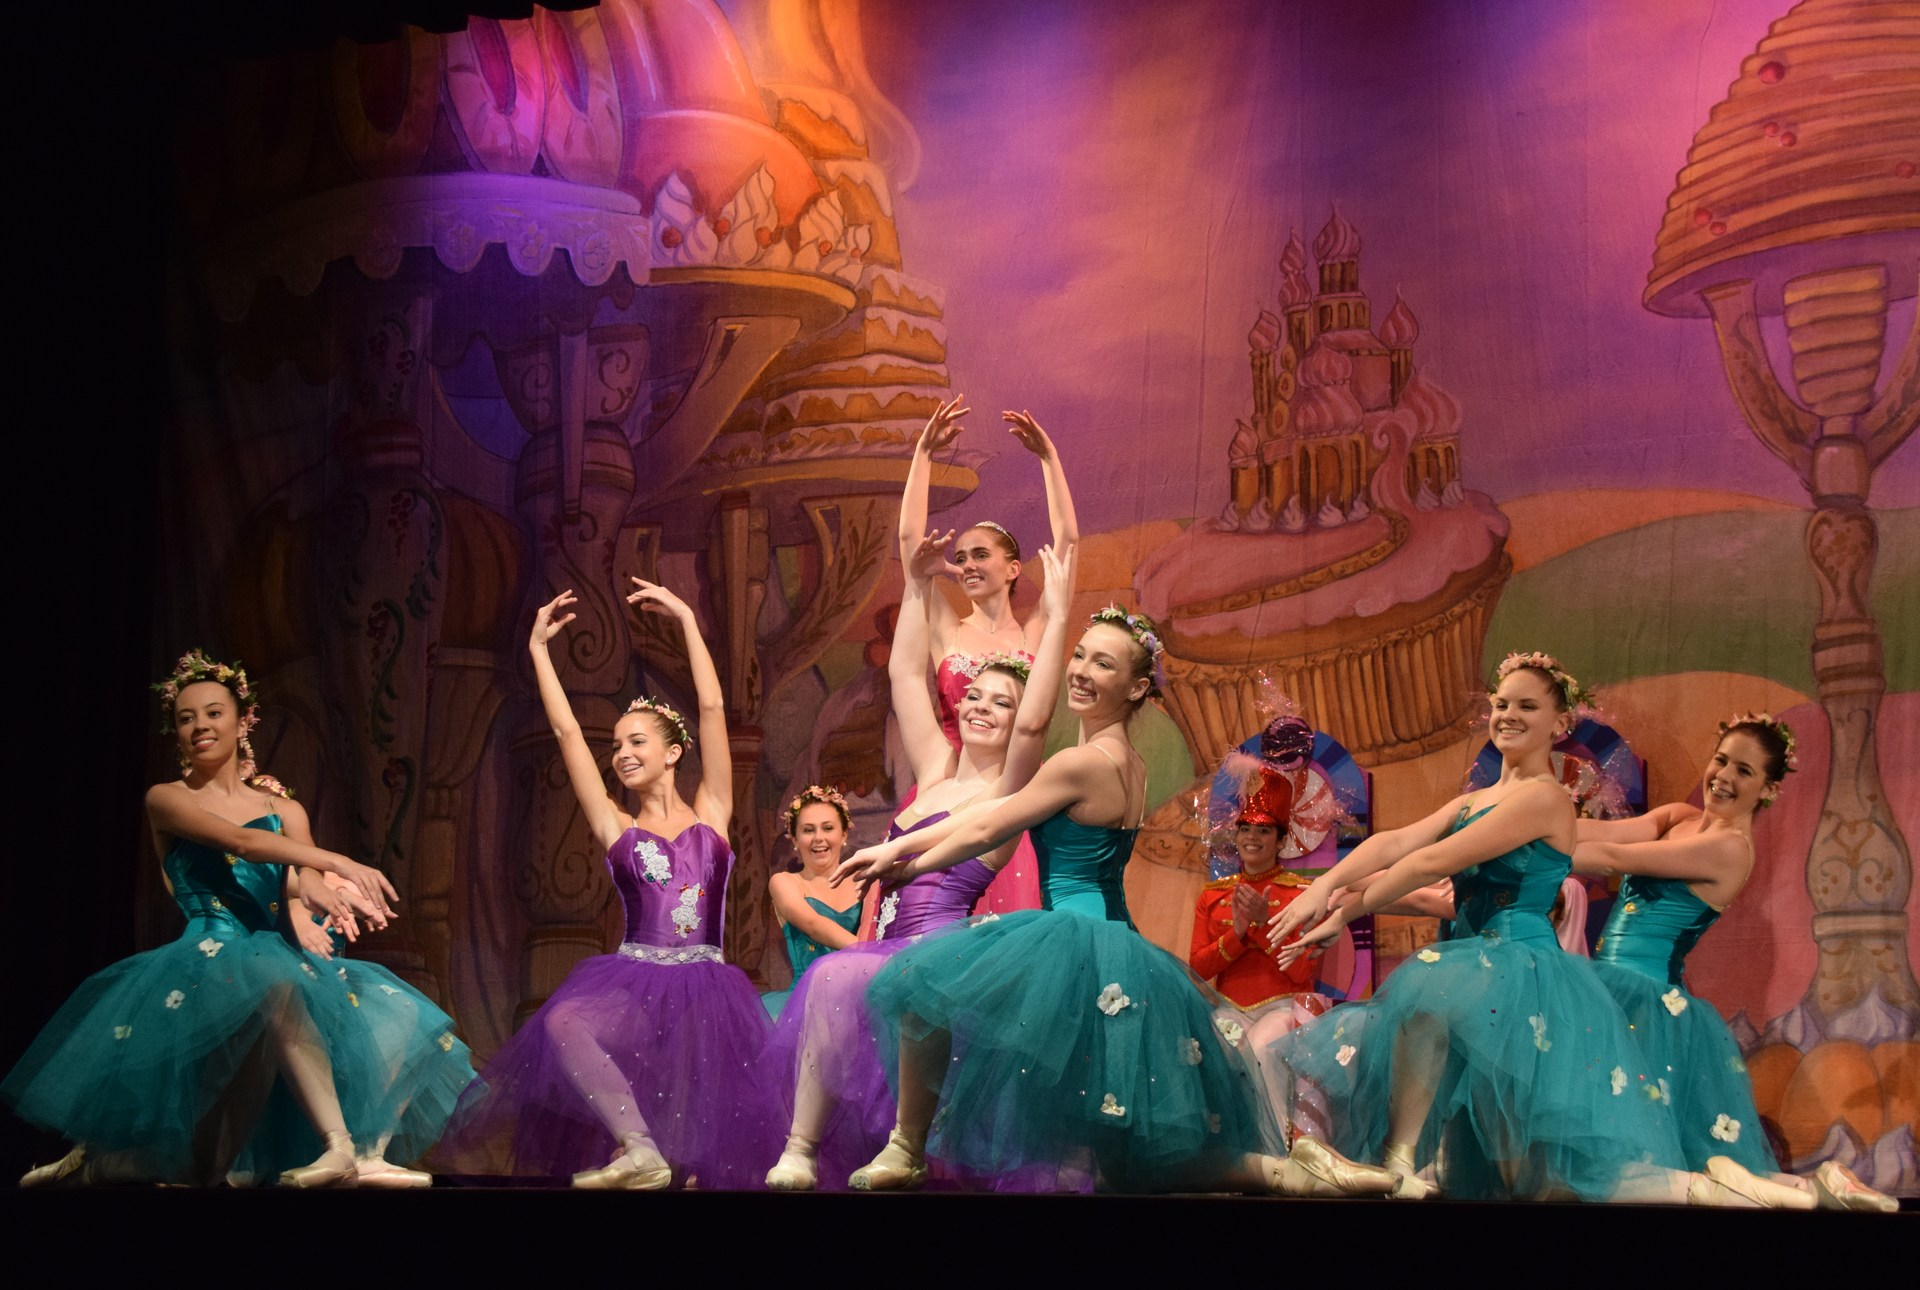 SHA students performing the Nutcracker